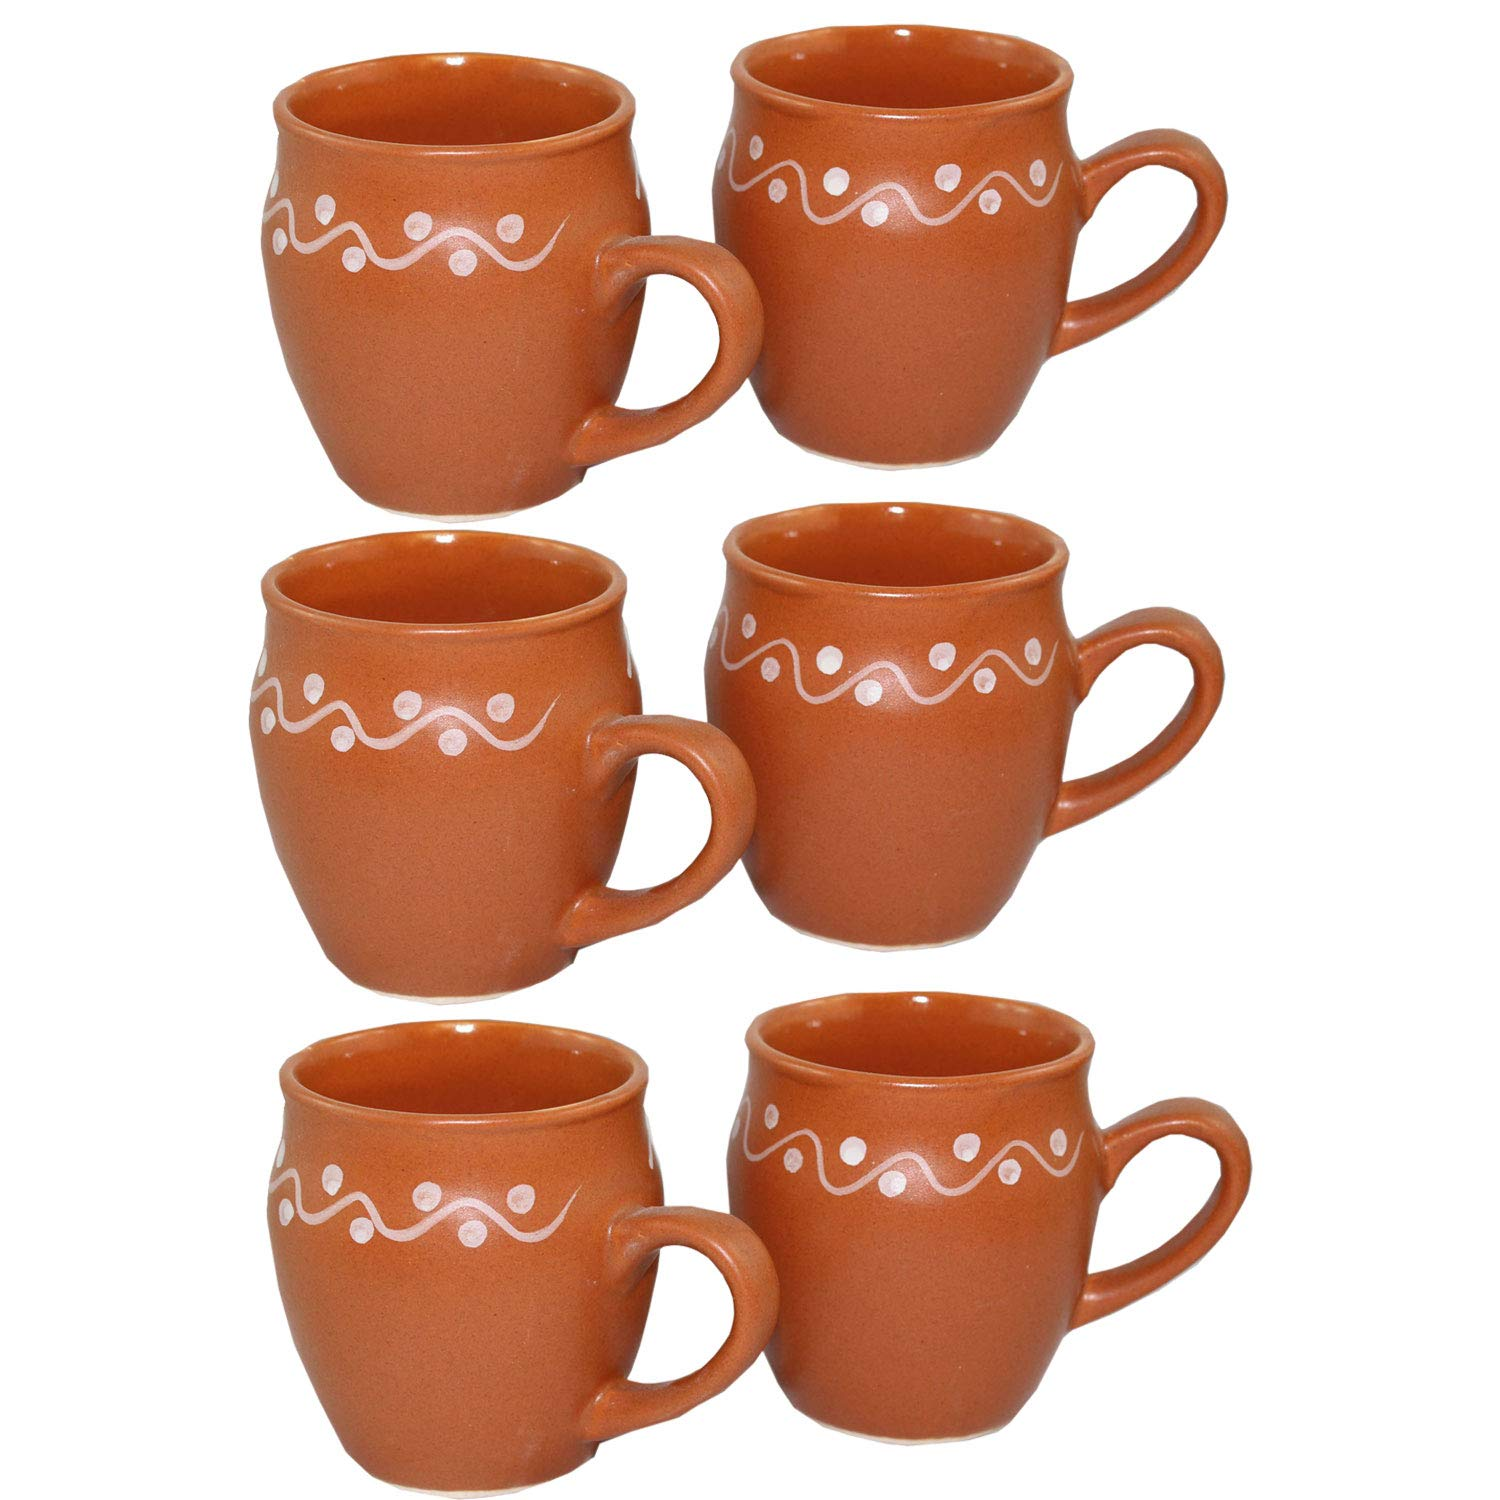 Odishabazaar Kulhar Kulhad Cups Traditional Indian Chai Tea Cup Set of 6 (5.4 oz)